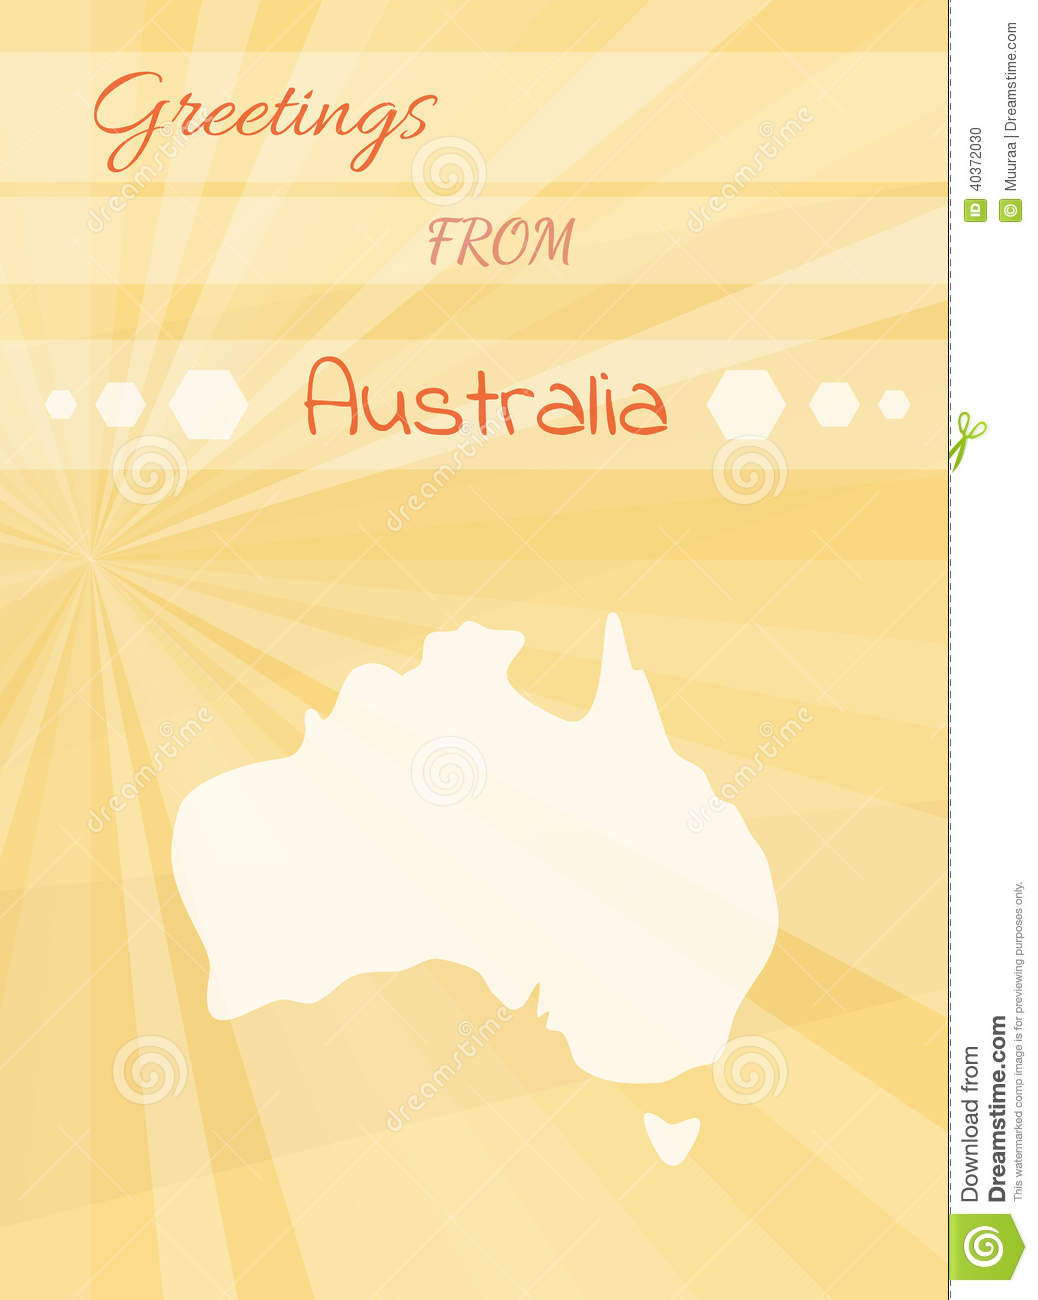 Greetings From Australia Stock Vector Illustration Of Tourism